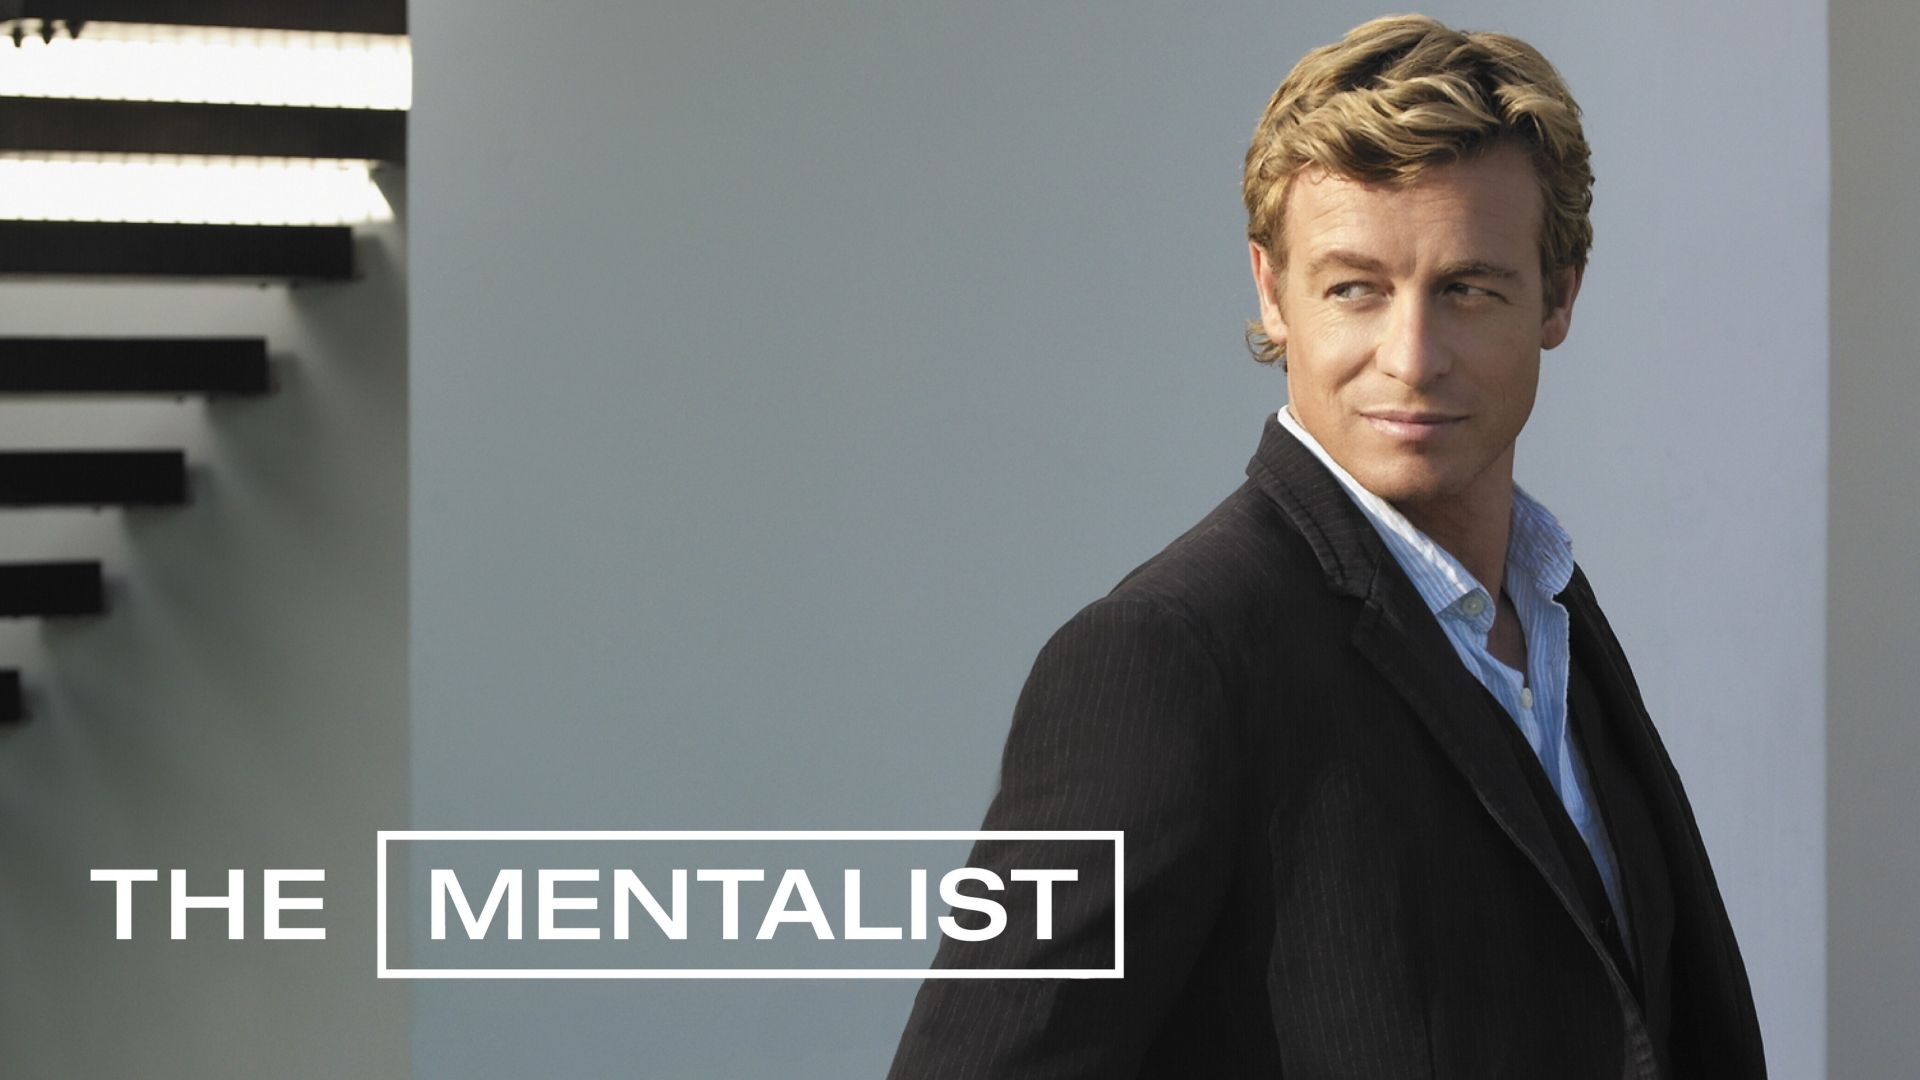 The Mentalist Backgrounds, Compatible - PC, Mobile, Gadgets| 1920x1080 px